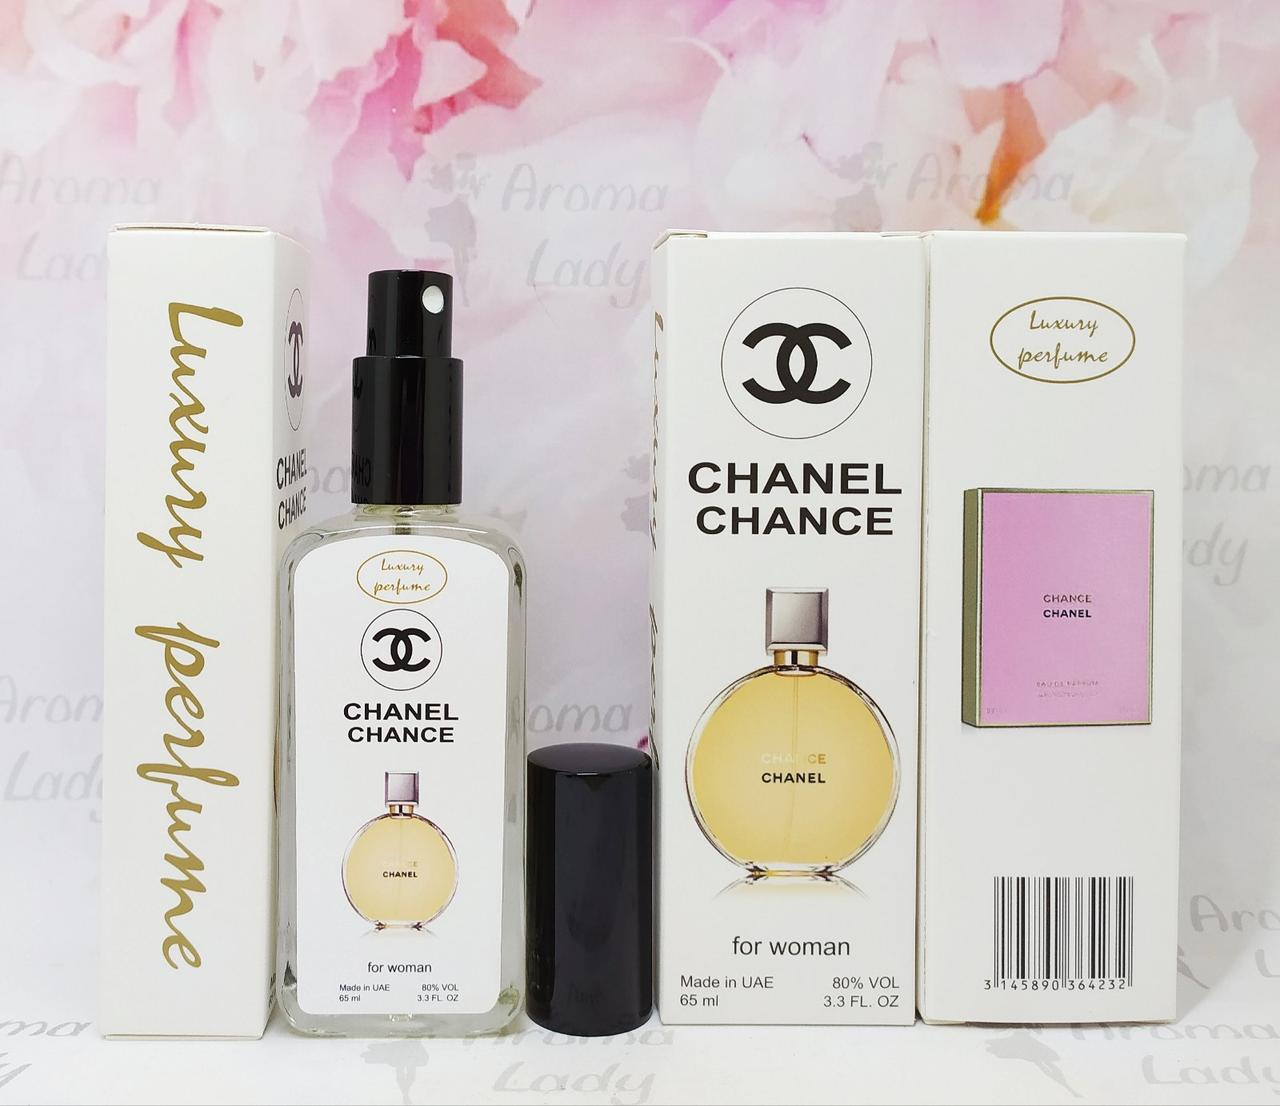 Тестер VIP Luxury Perfume Chanel Chance 65 мл